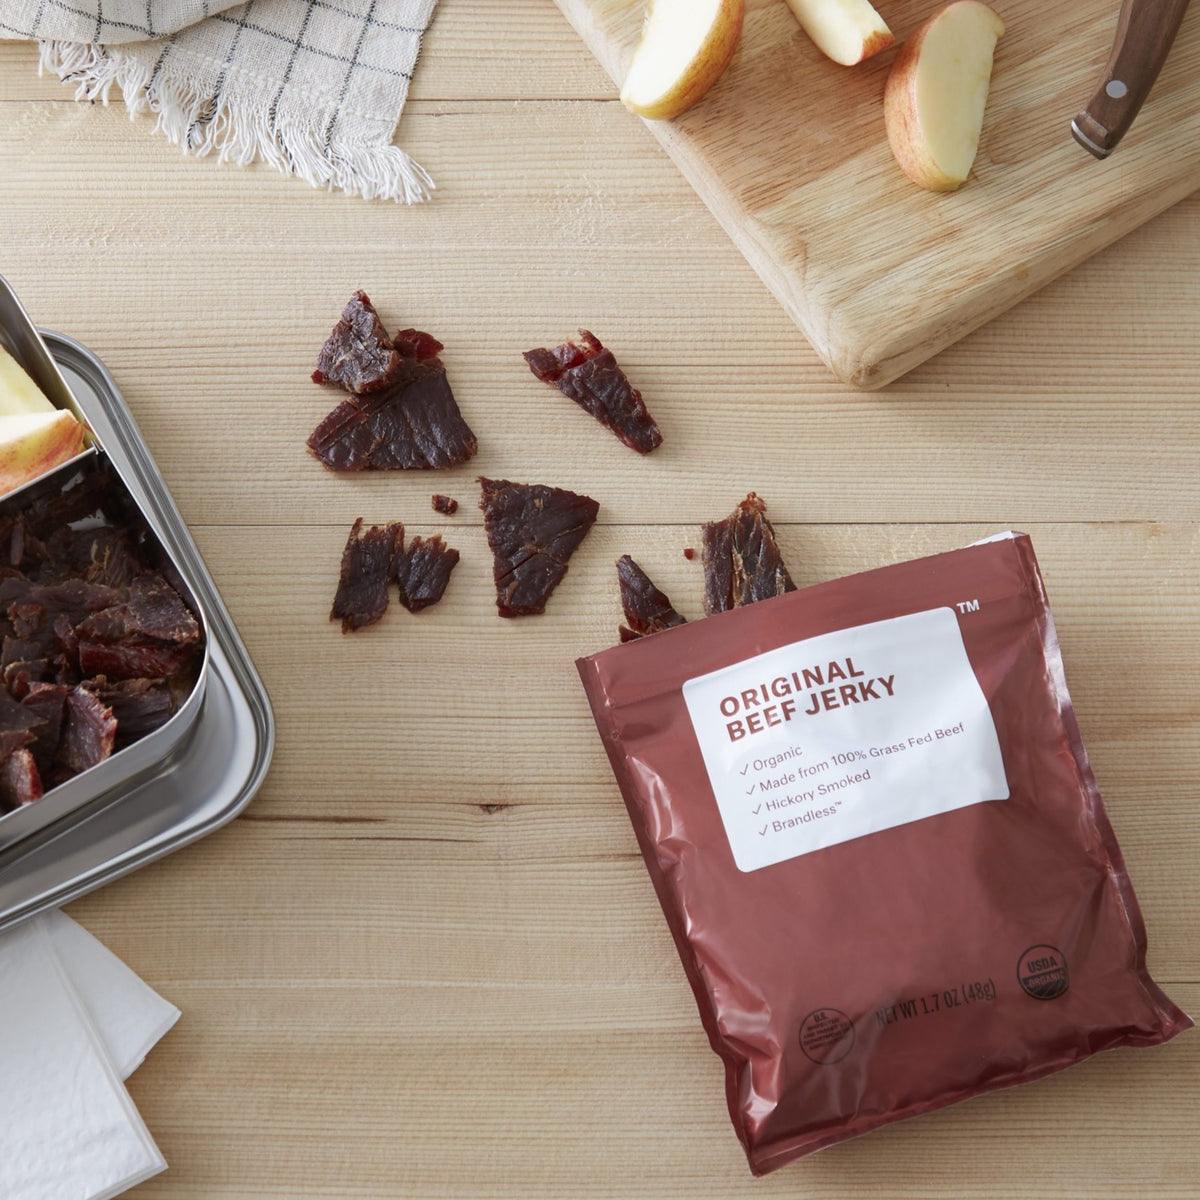 Jerky package on a kitchen table